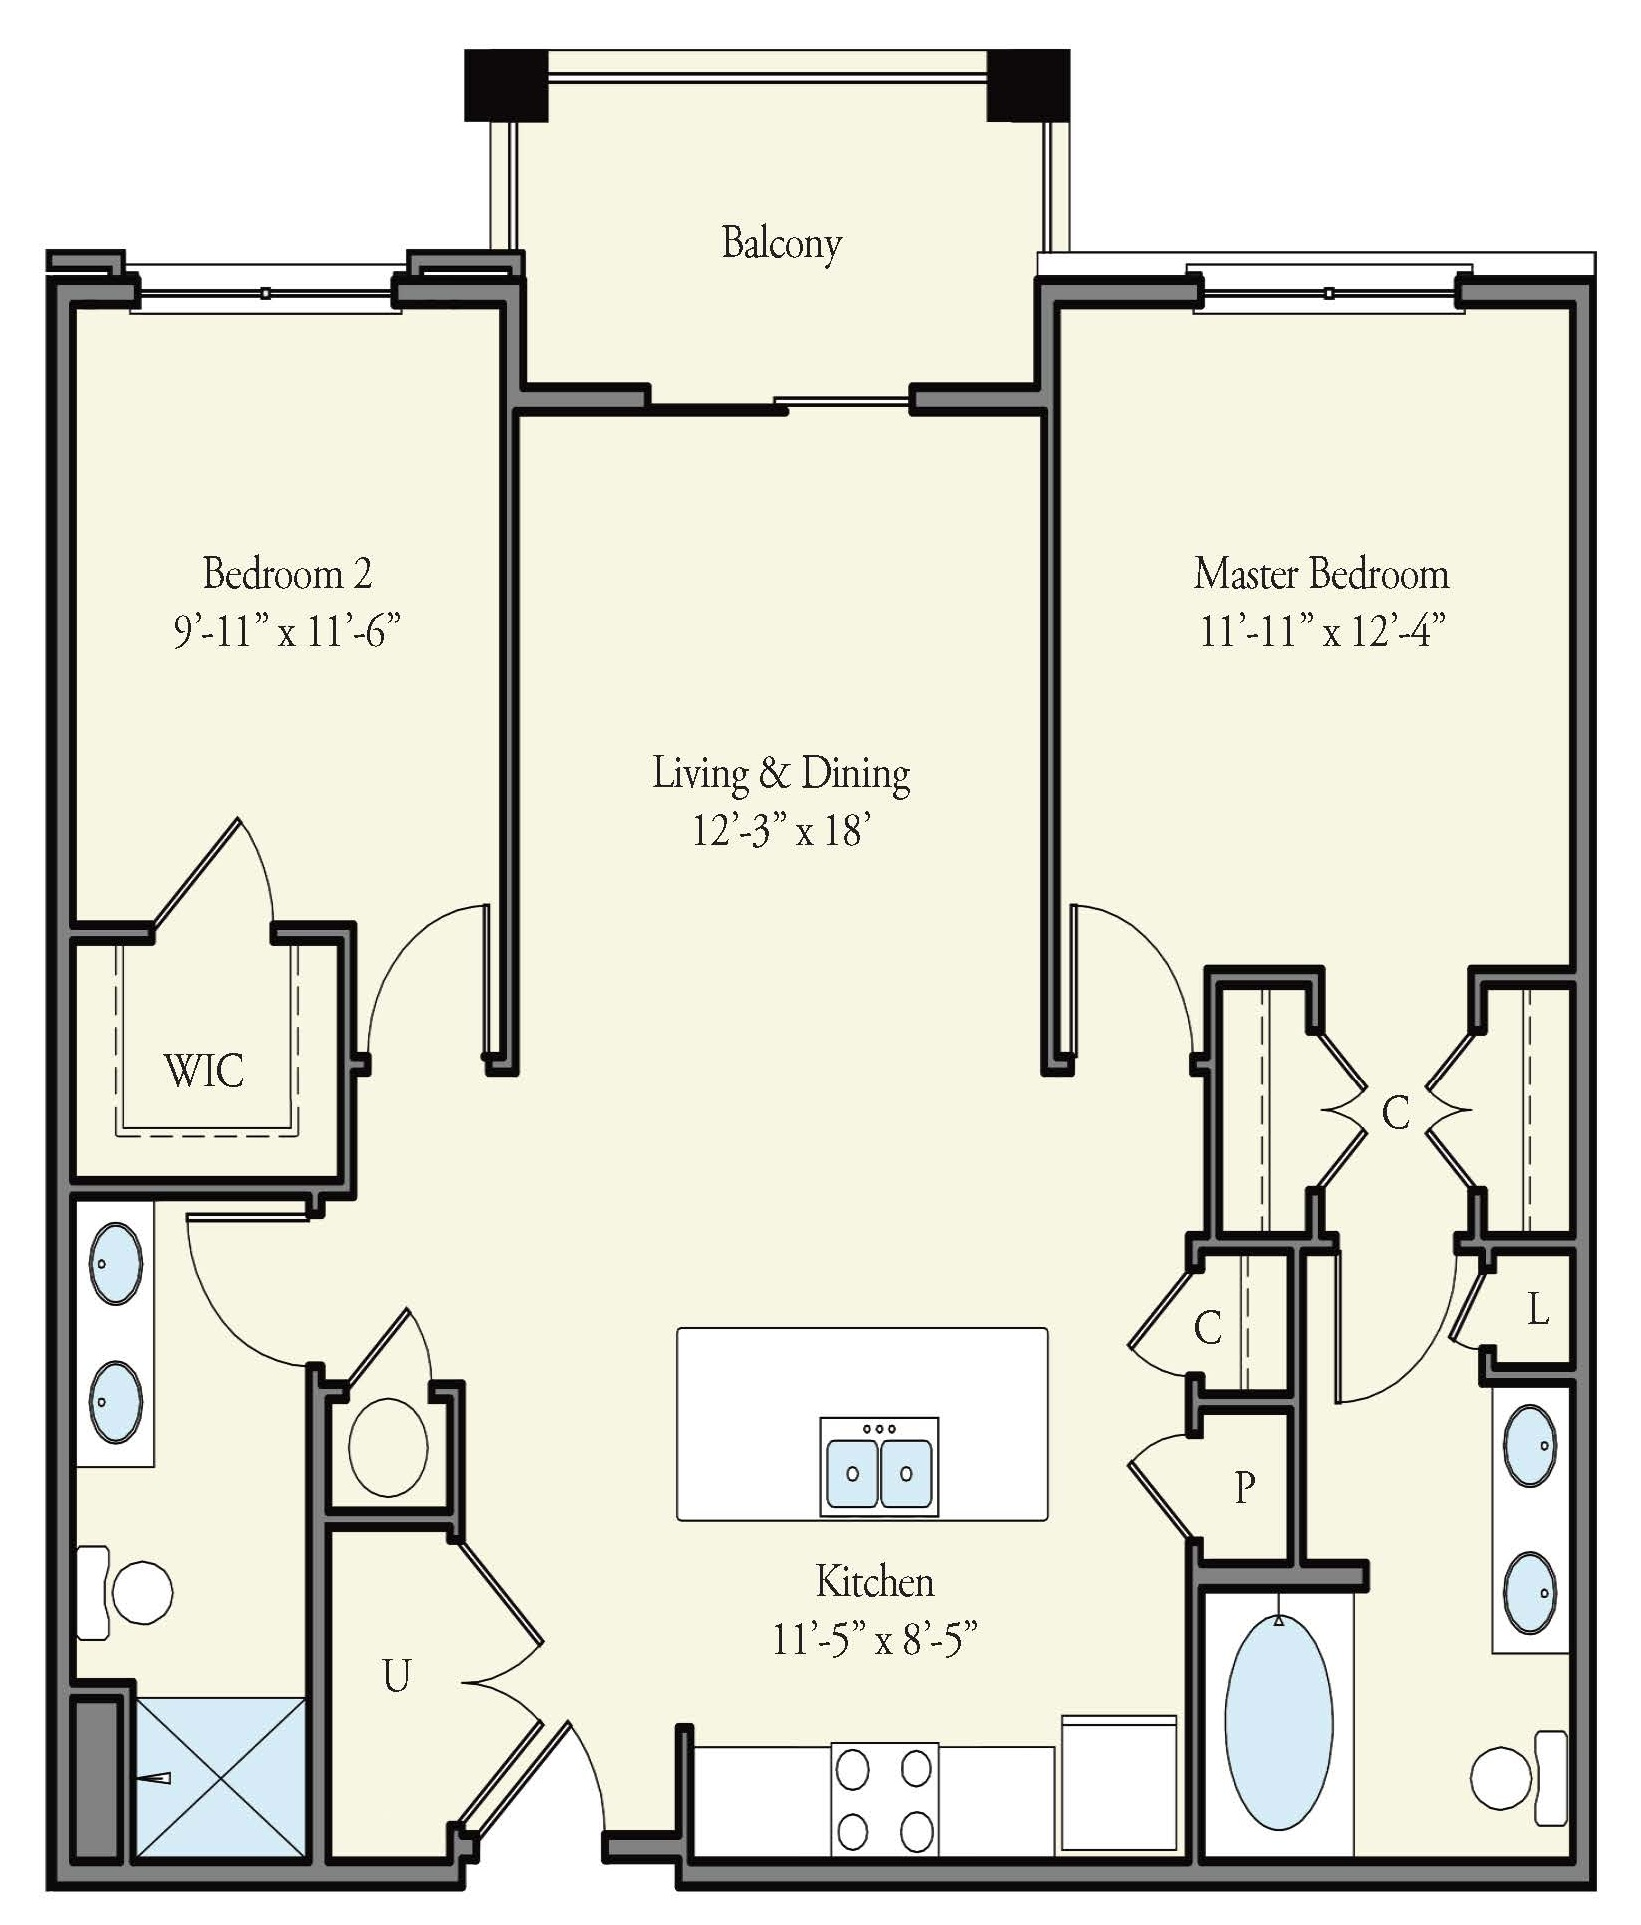 2 Beds 2 Baths Apartment for Rent in Norfolk, VA The ...